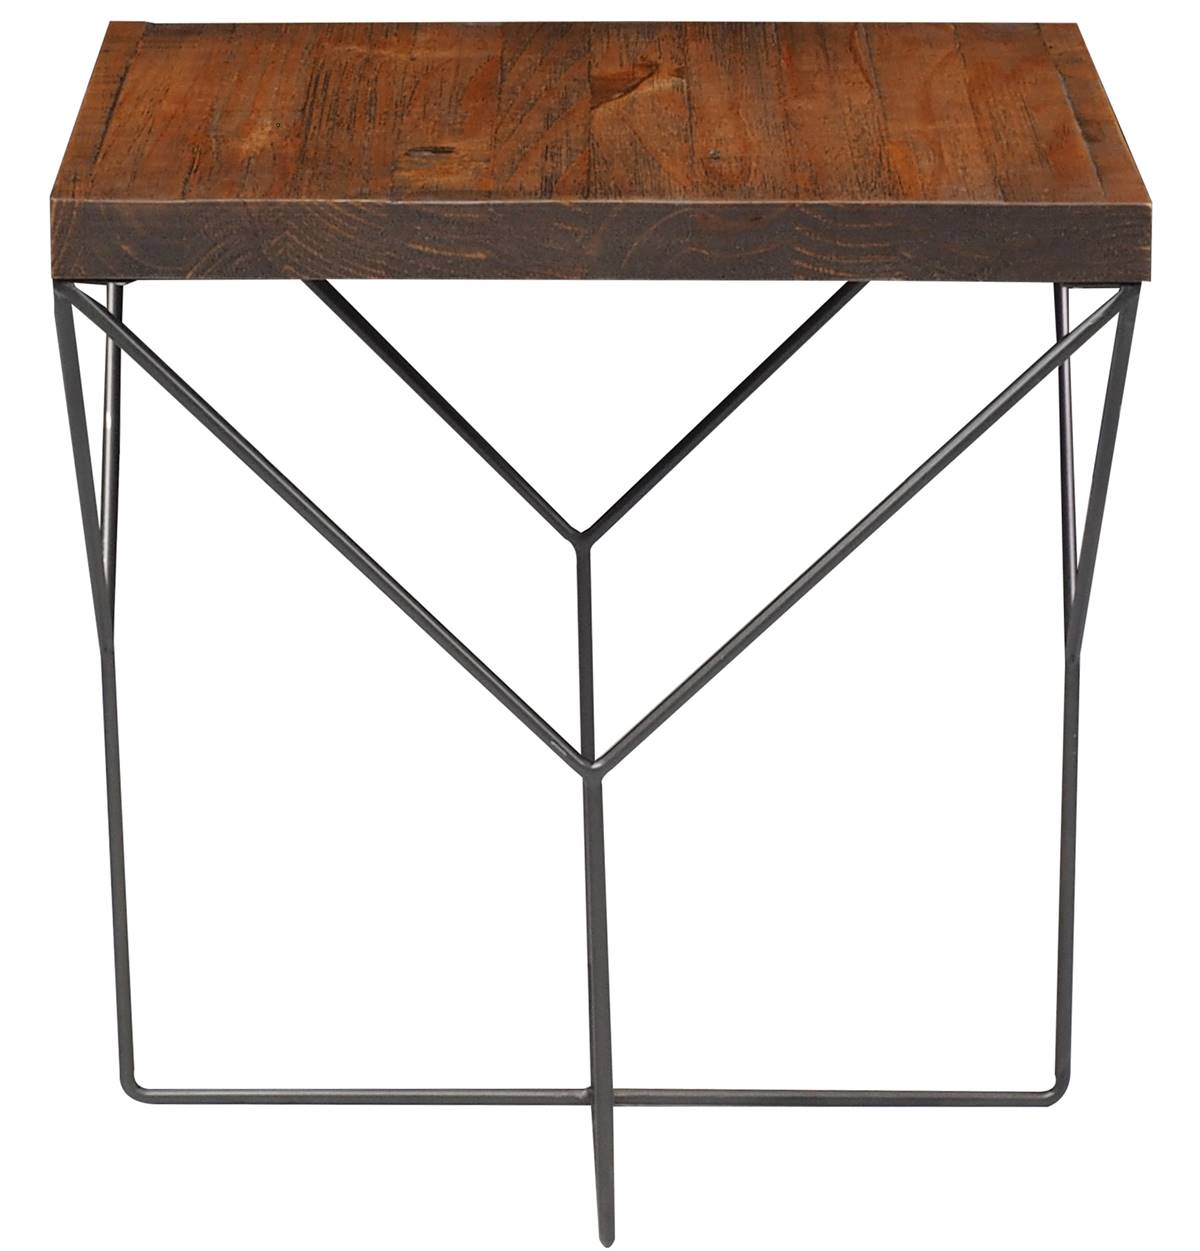 Mesa Lateral Abbey Yvi Rustic Brown com Base Grafite 55 cm (ALT) - 50090